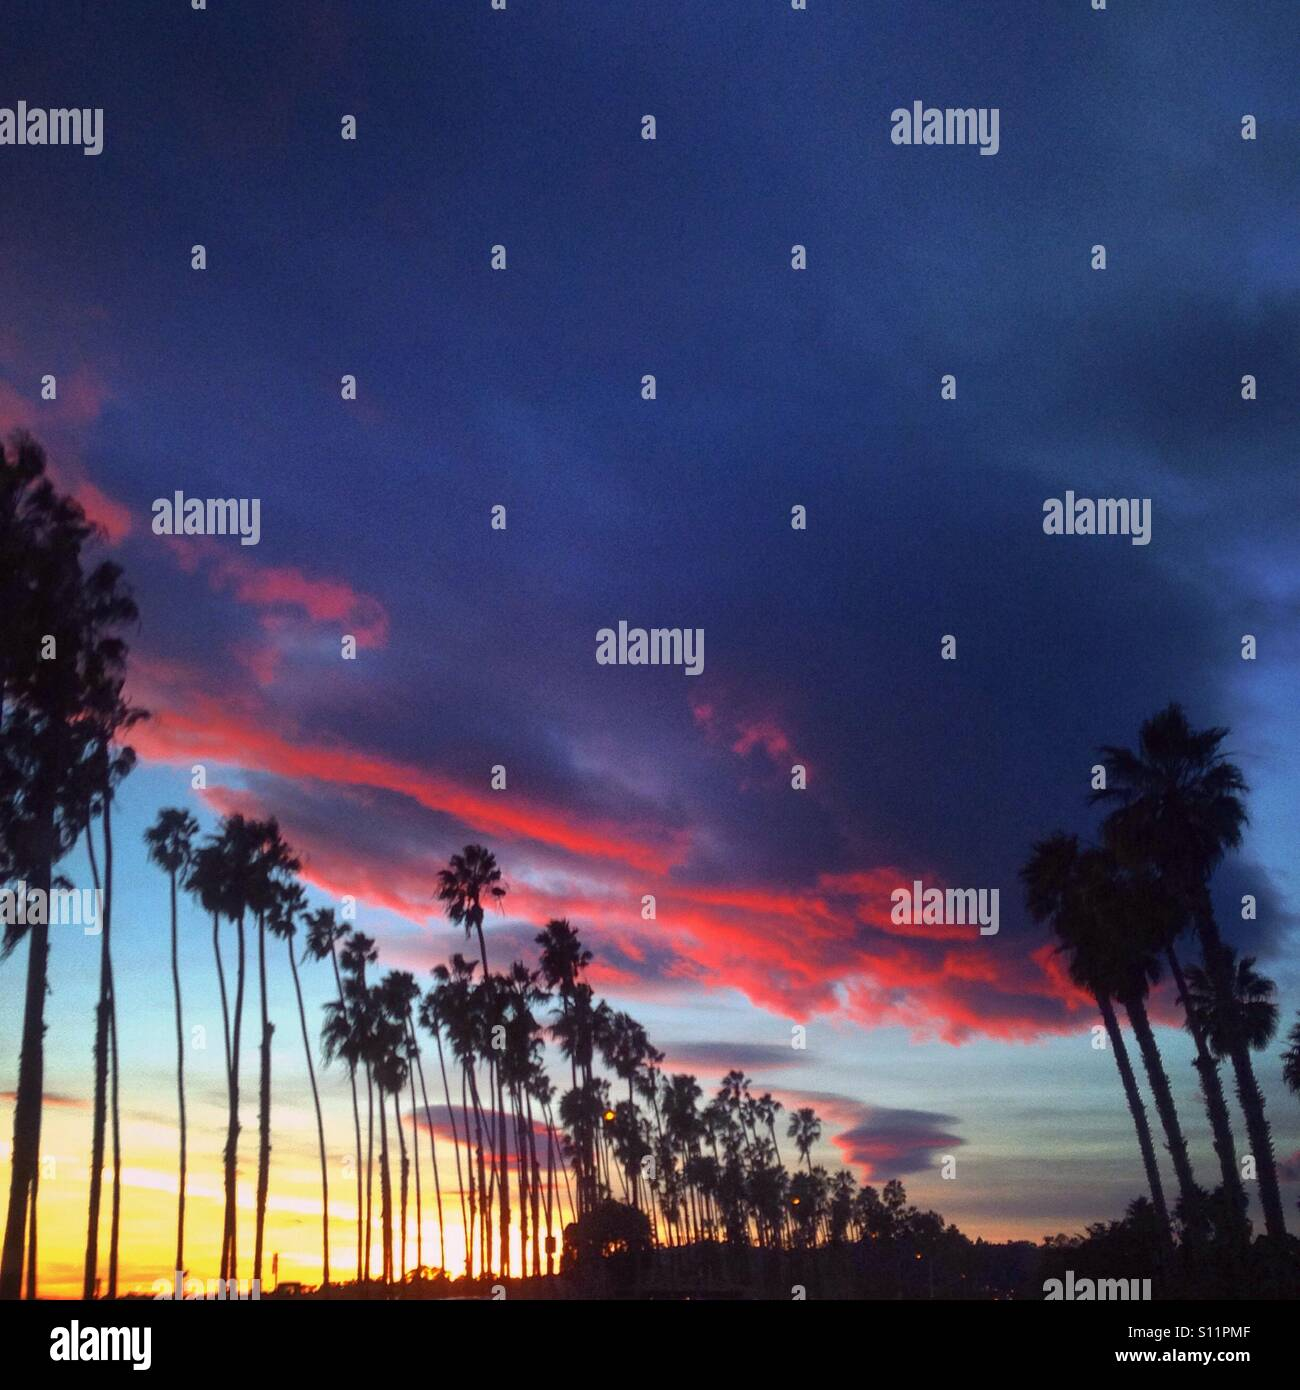 Sunset clouds above palm trees - Stock Image